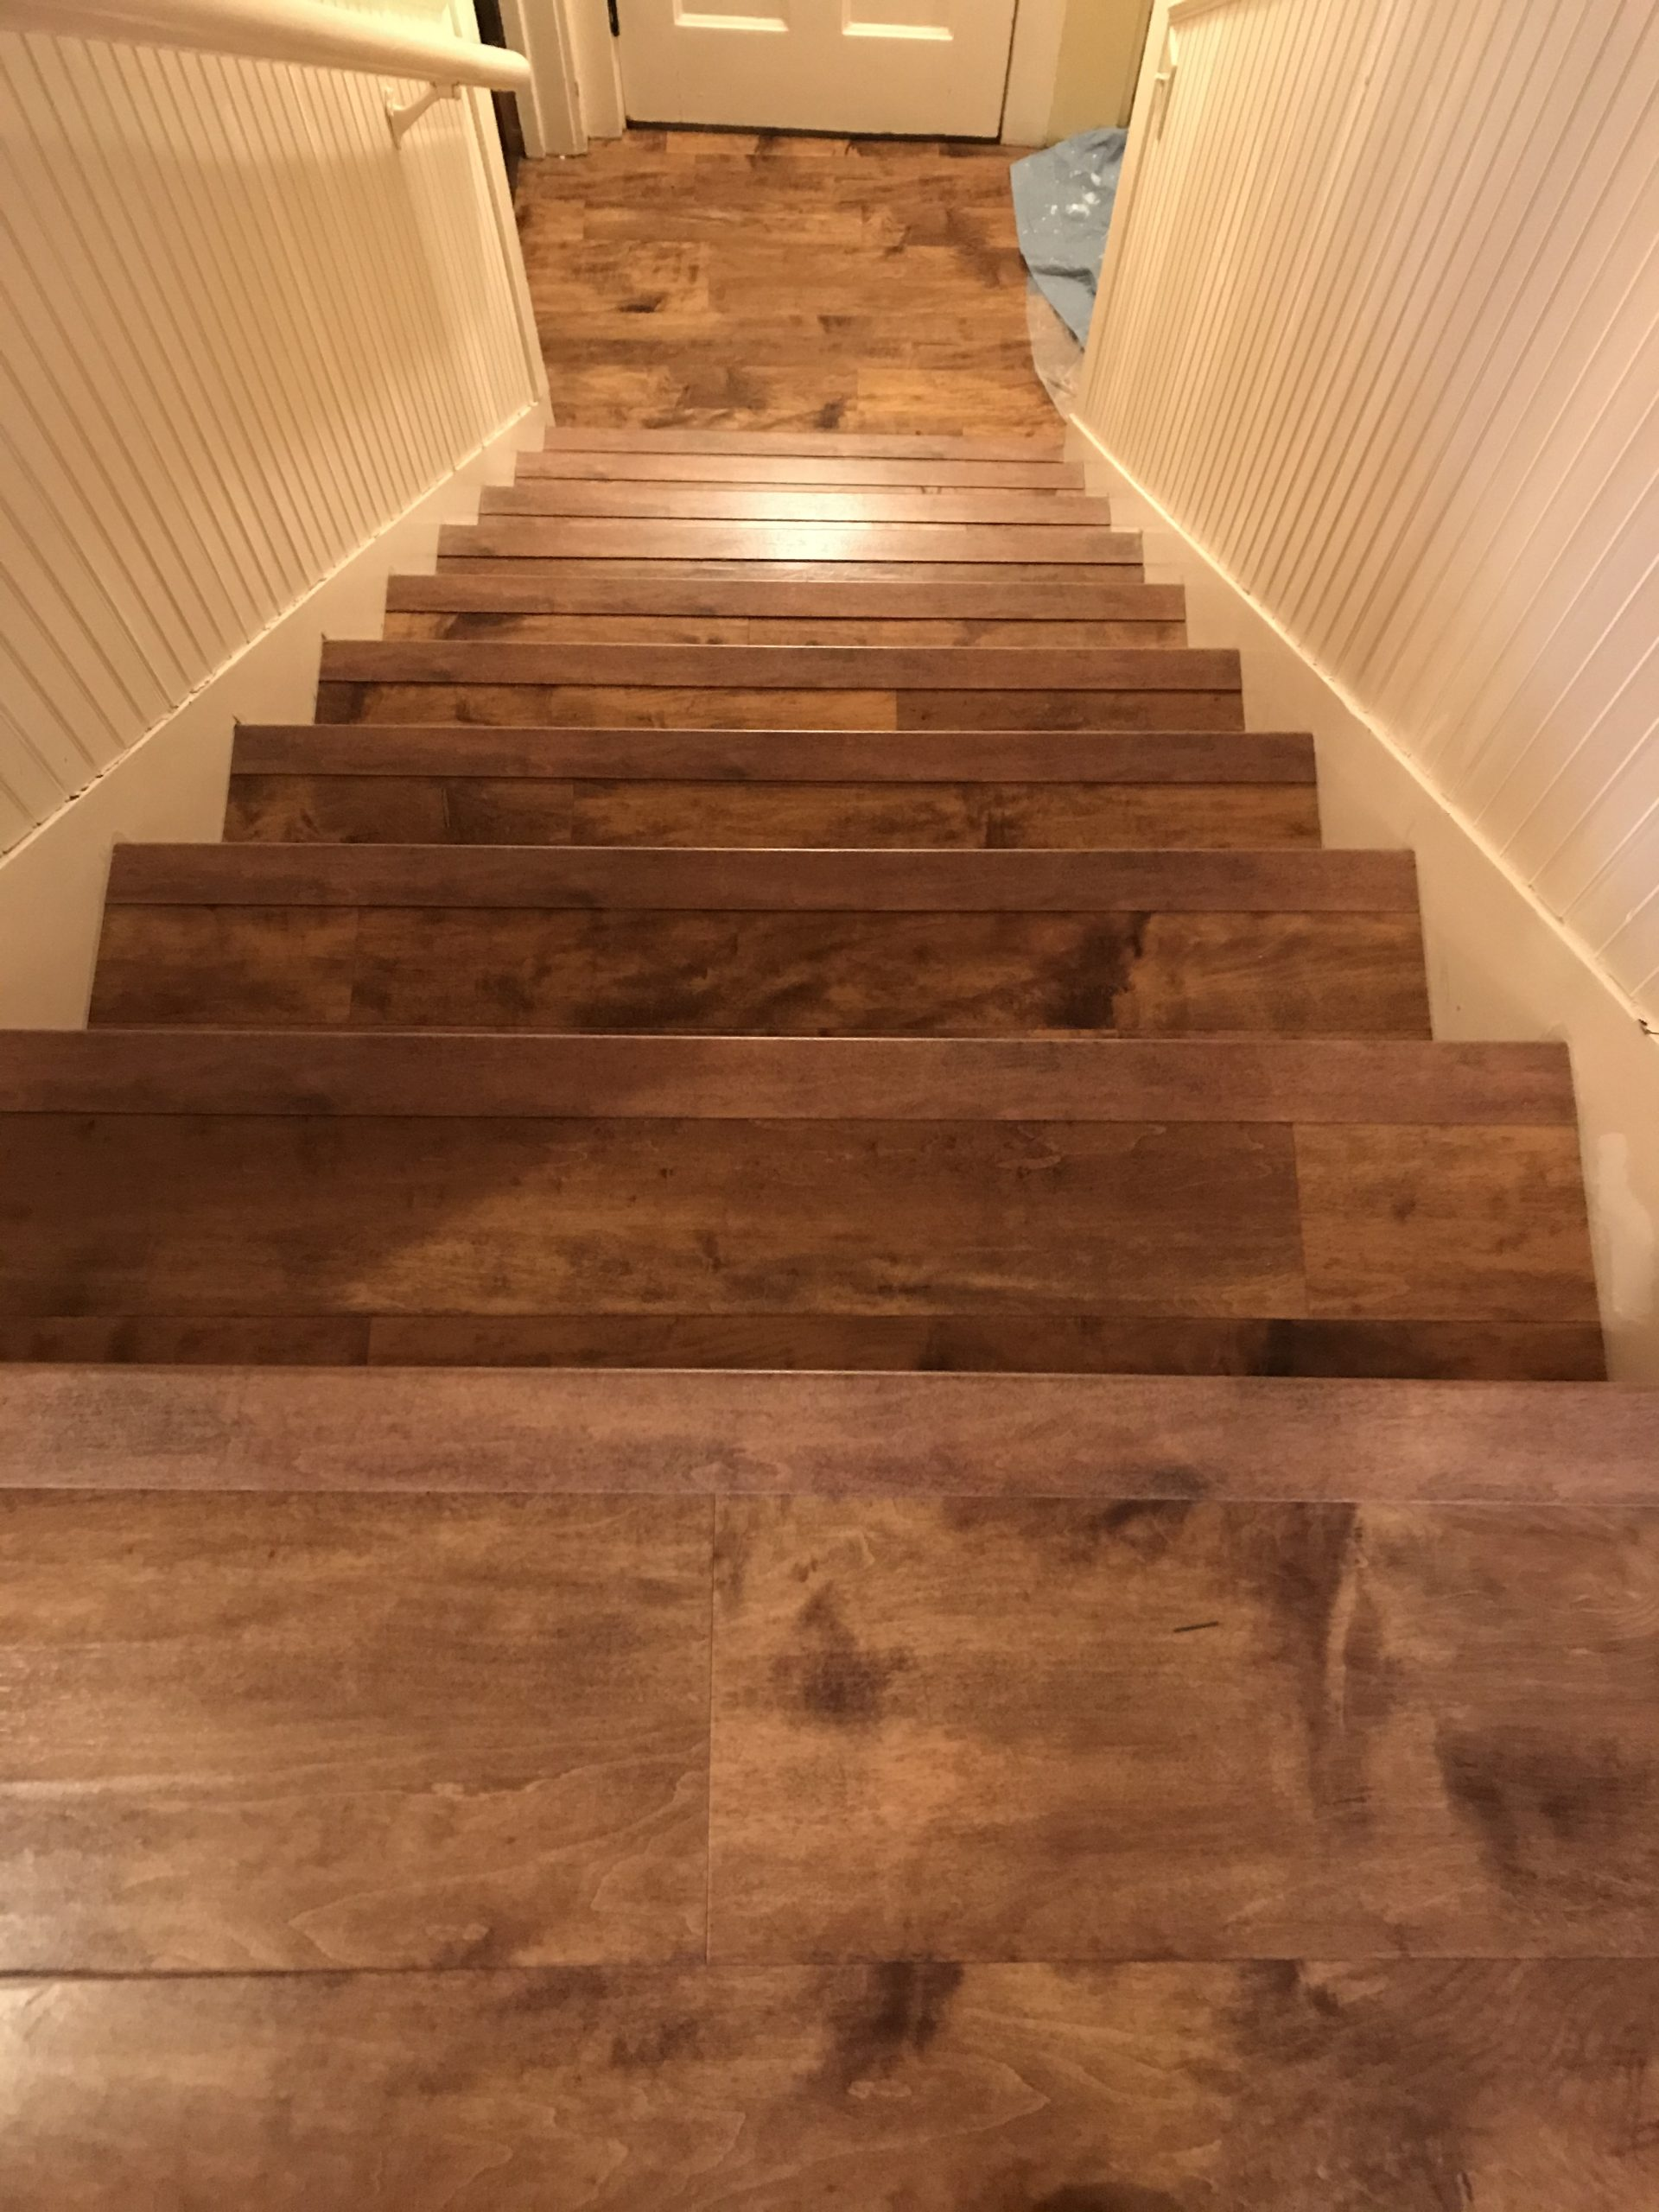 wood-stairs-new-floors-scaled